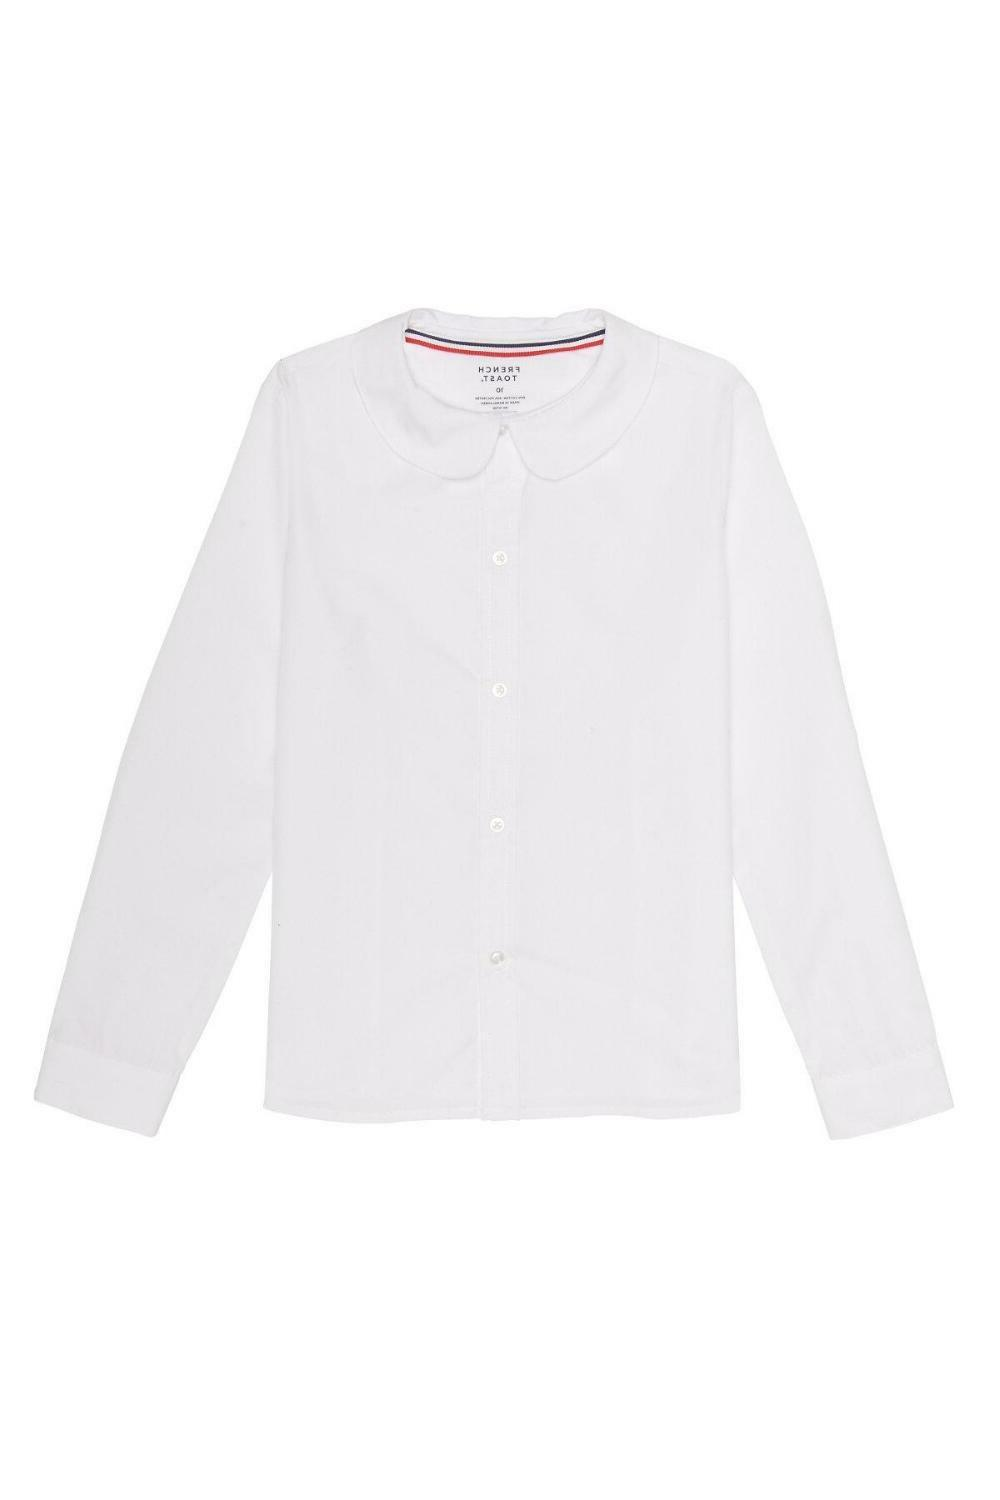 girls l s peter pan poplin blouse